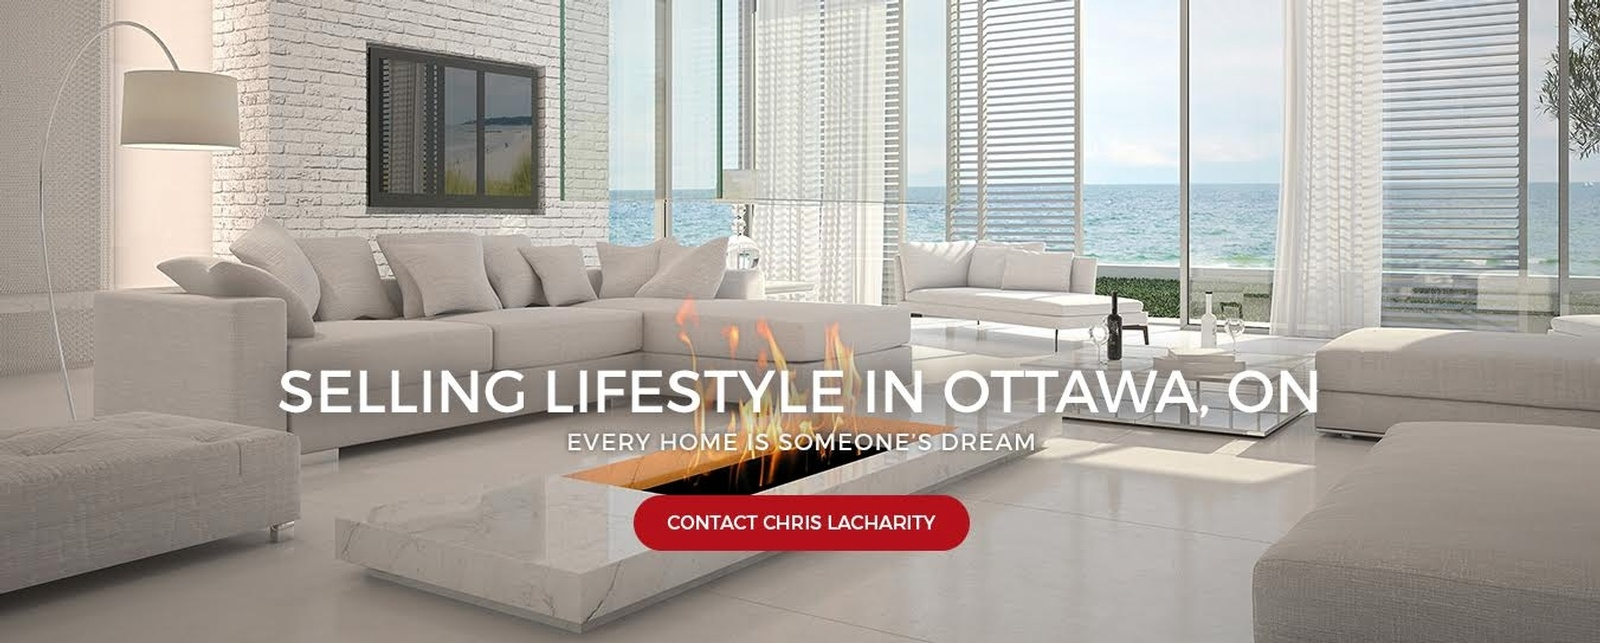 professional real estate agent ottawa ontario